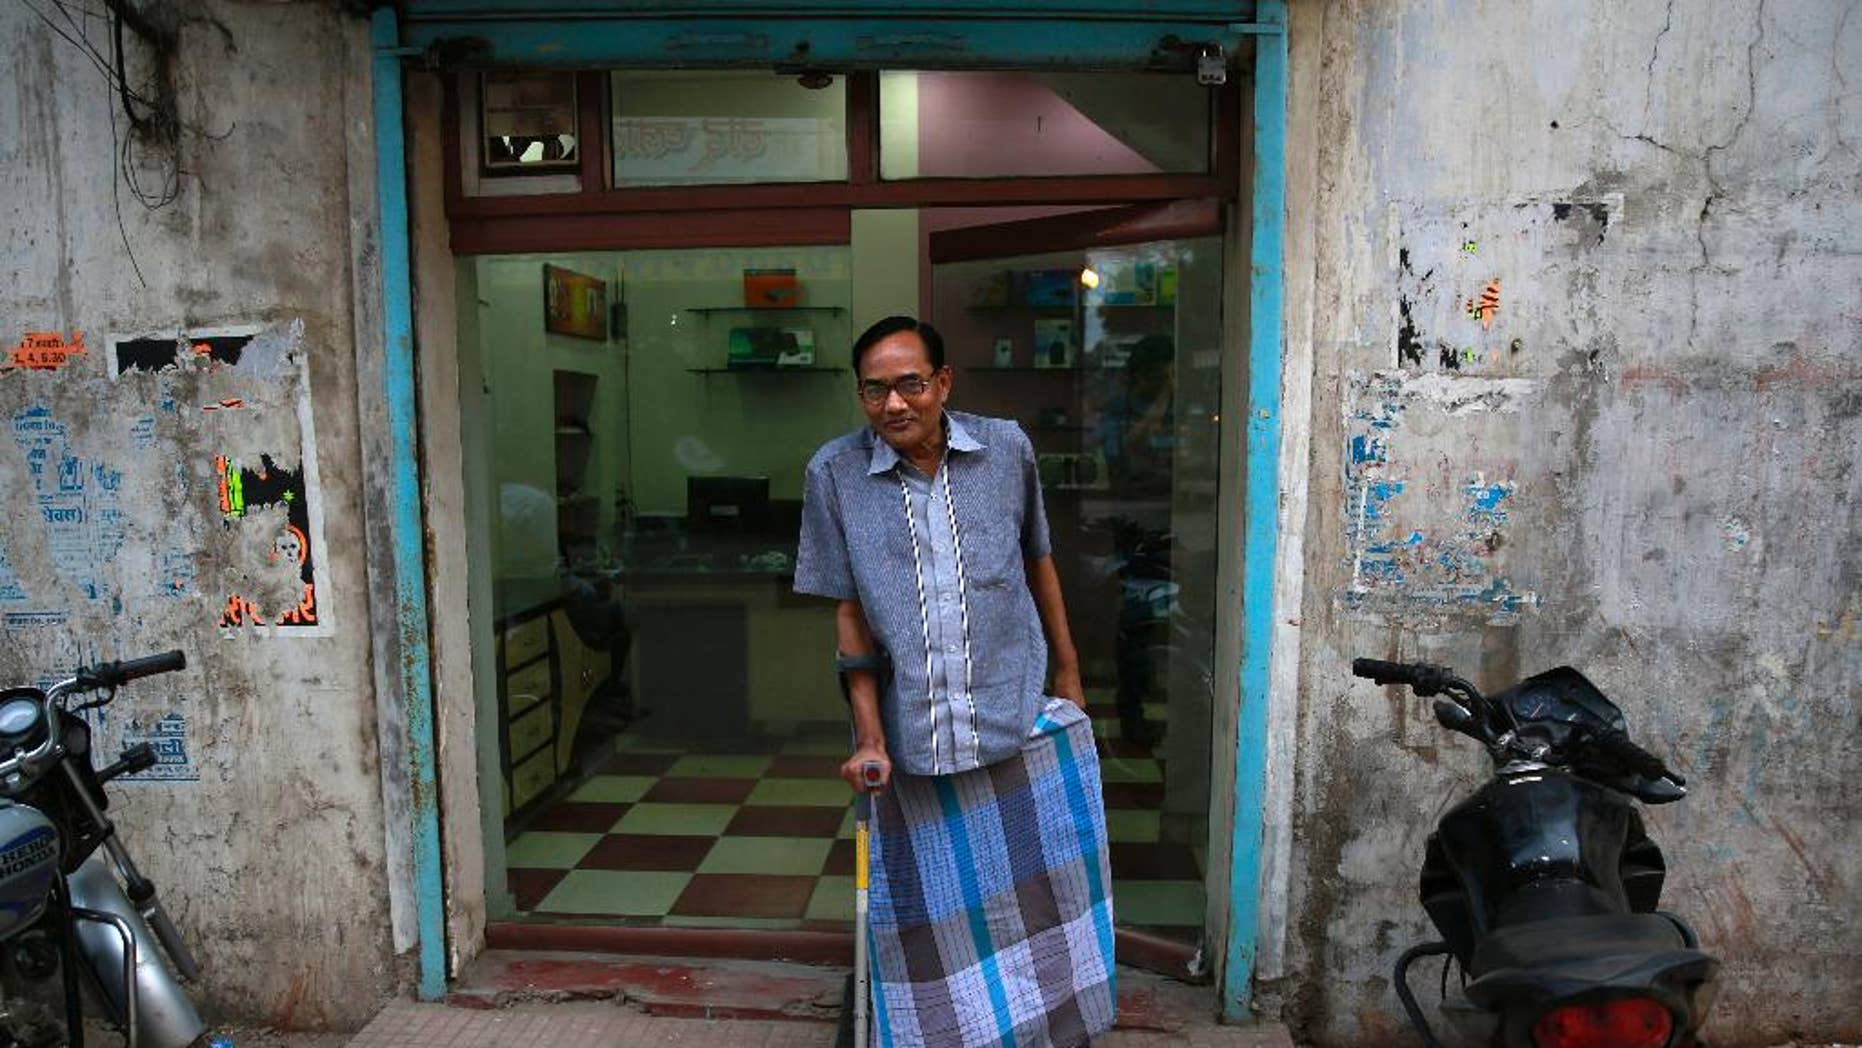 In this April 15, 2014 photo, India's Ramesh Agrawal walks outside his shop during an interview in Raigarh in Chhattisgarh state, India. Six environmental advocates from India, Peru, Russia and three other nations have won this year's Goldman Prize, which is awarded annually for grass-roots activism. Agrawal received the prize for helping villagers fight a large coal mine in Chhattisgarh state, the San Francisco-based Goldman Environmental Foundation said Monday. (AP Photo/Rafiq Maqbool)